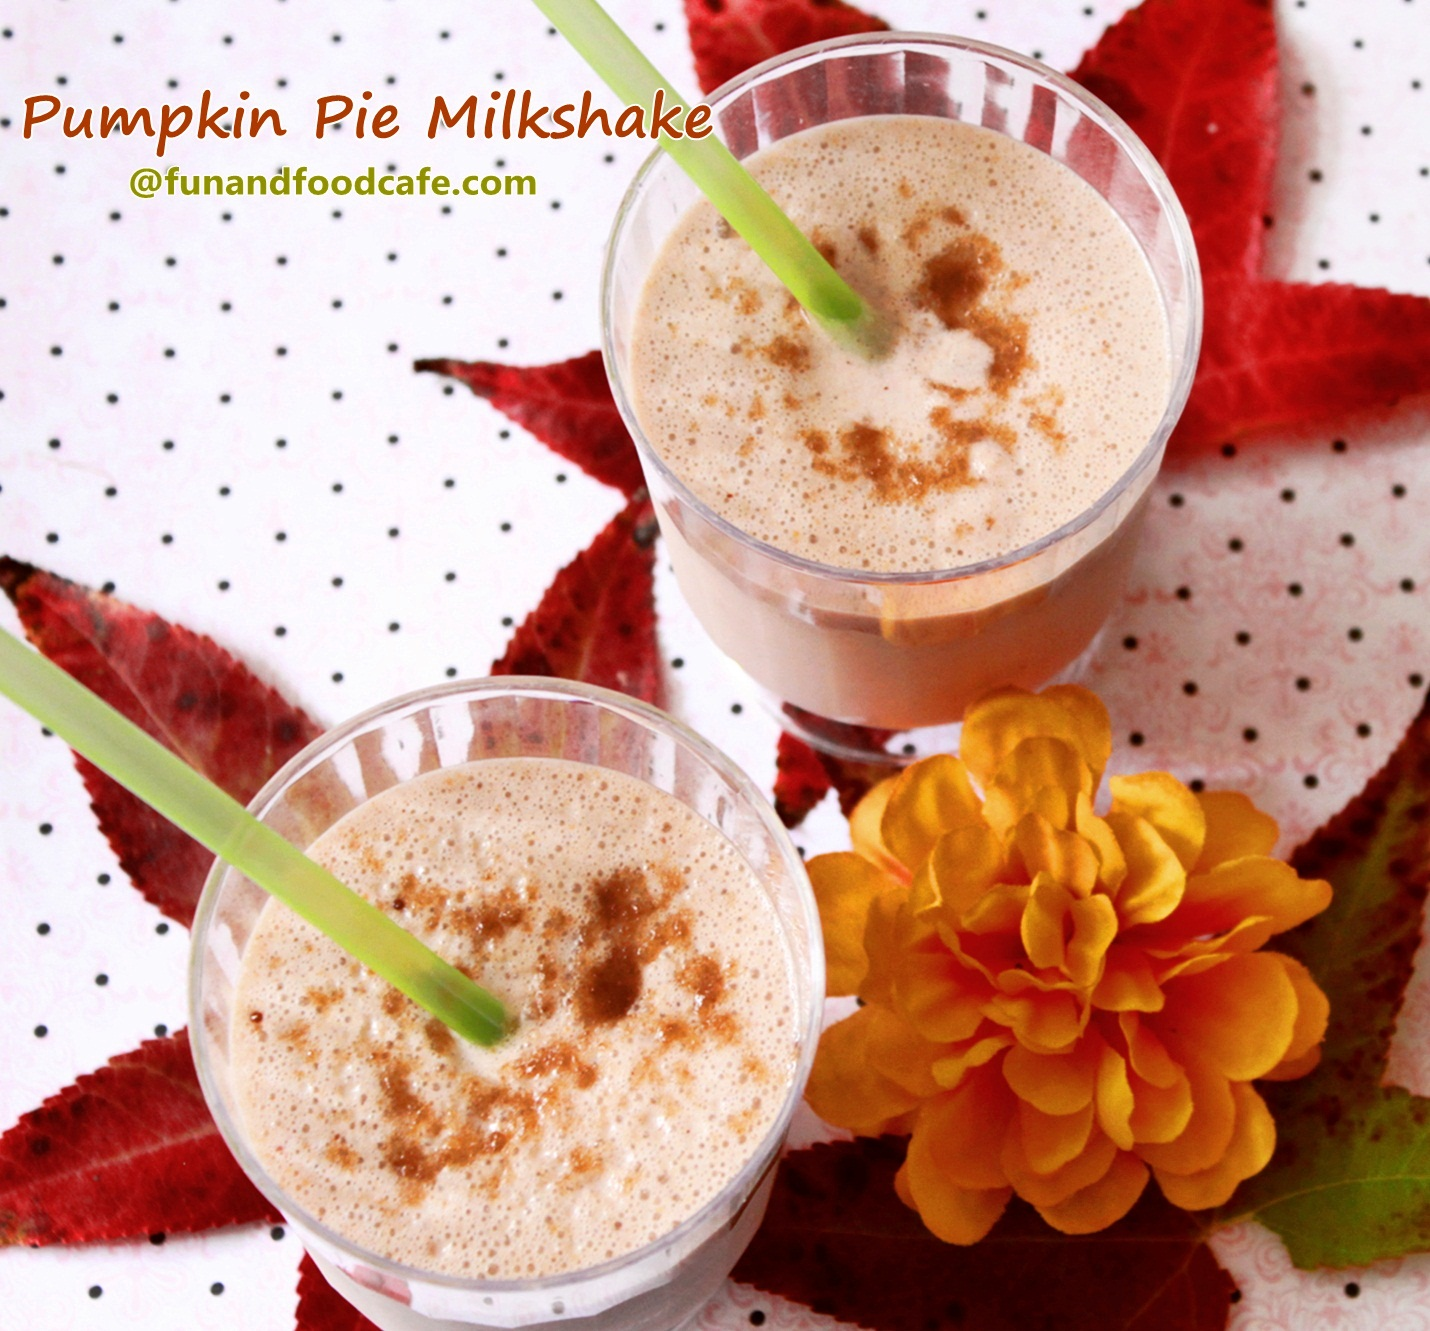 ... pie milkshake knew i had to make a vegan pumpkin pie milkshake over